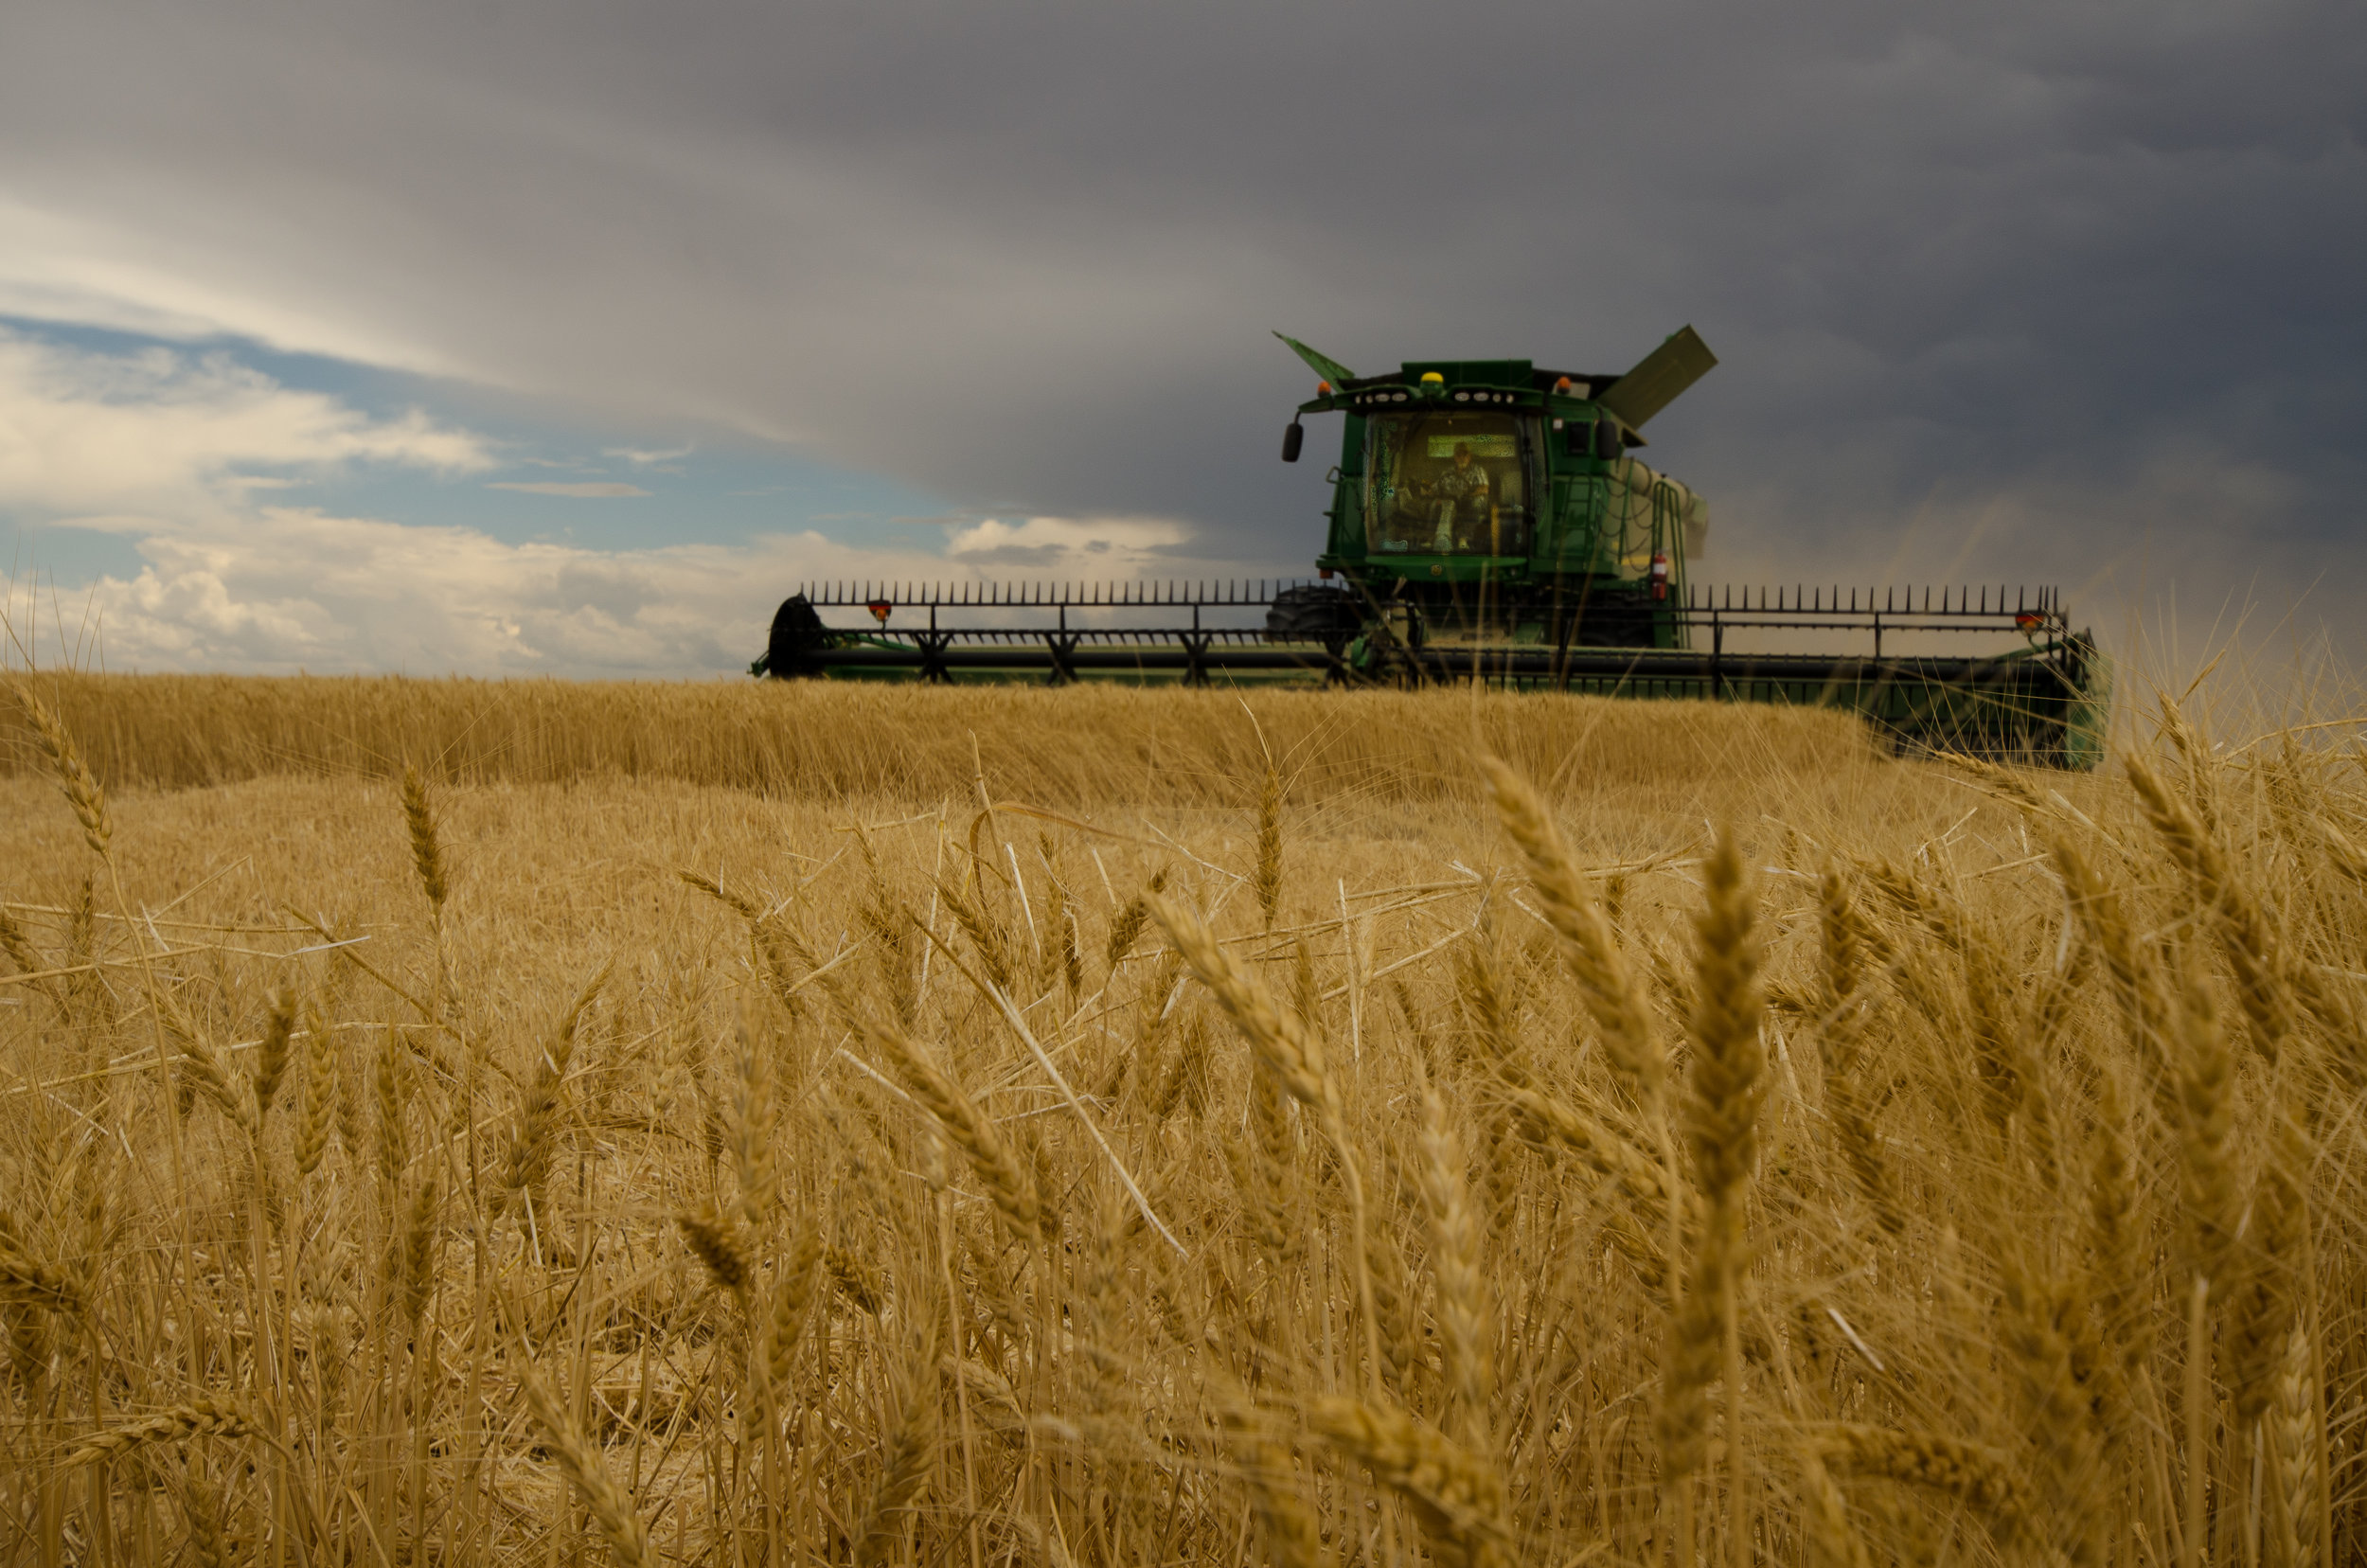 Image by Shannon Dizmang. Image of combine harvesting wheat in Colorado.